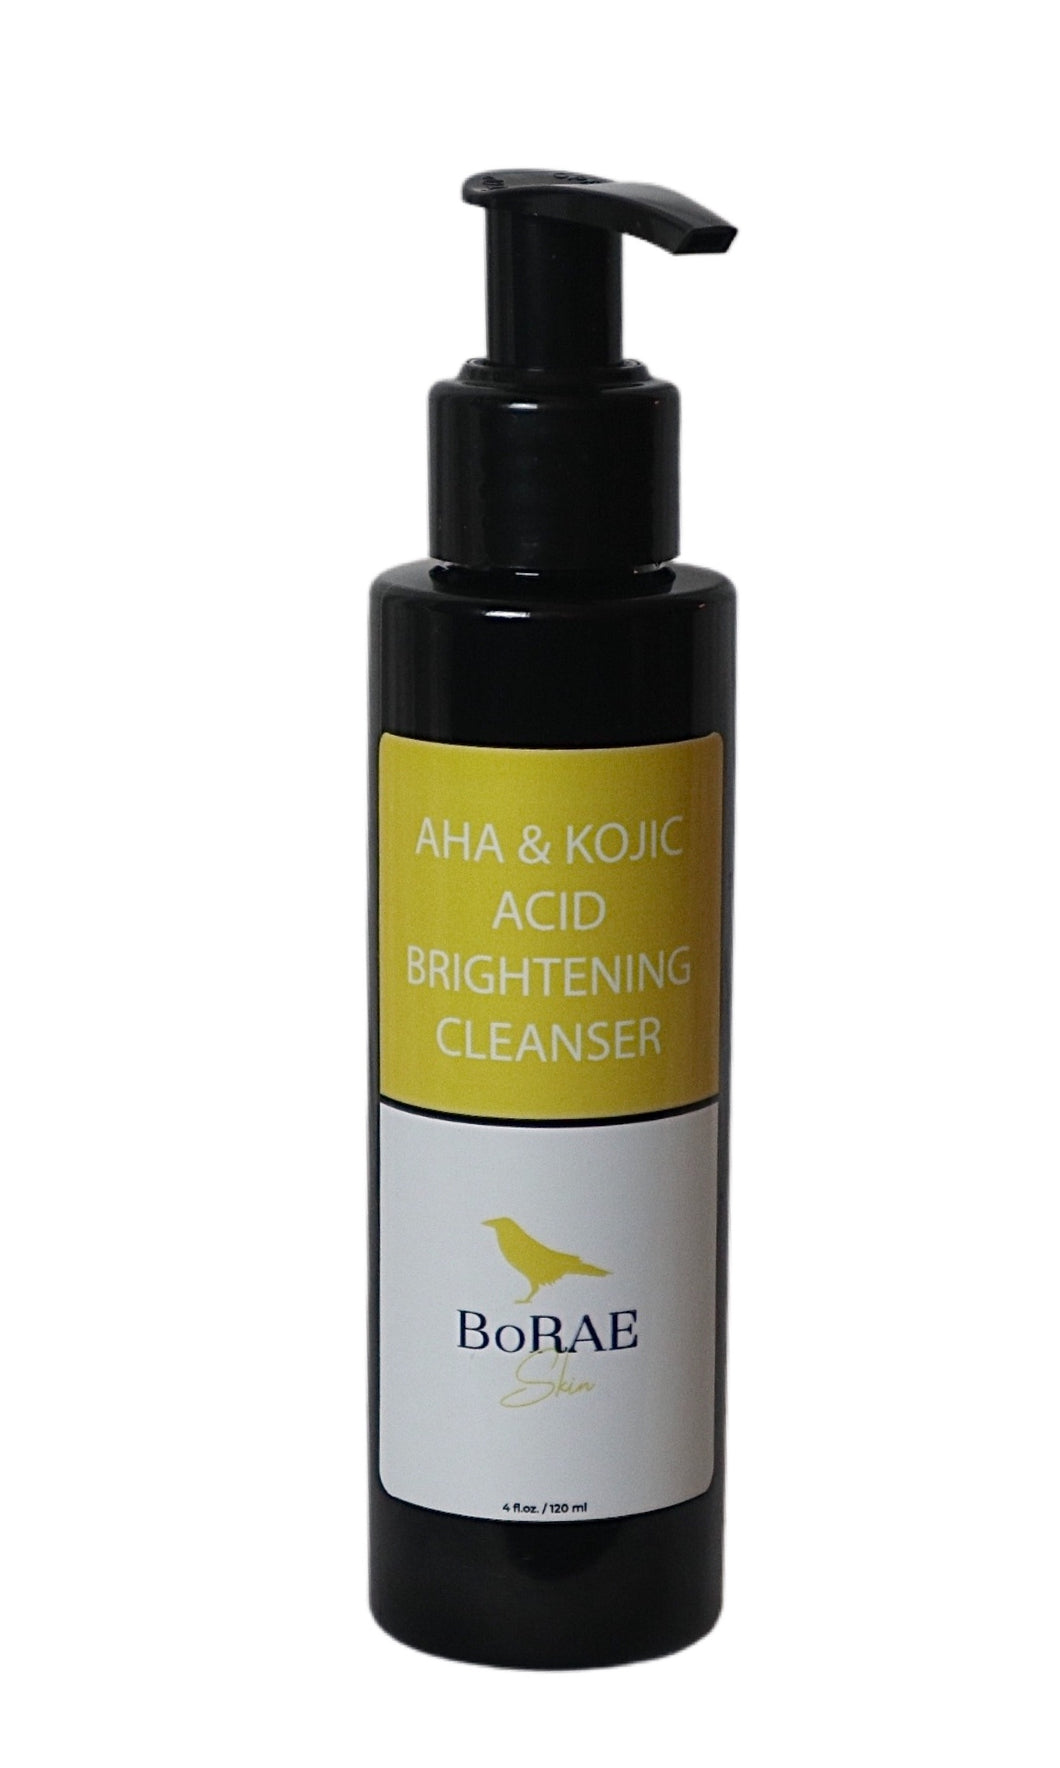 AHA & Kojic Acid Brightening Cleanser